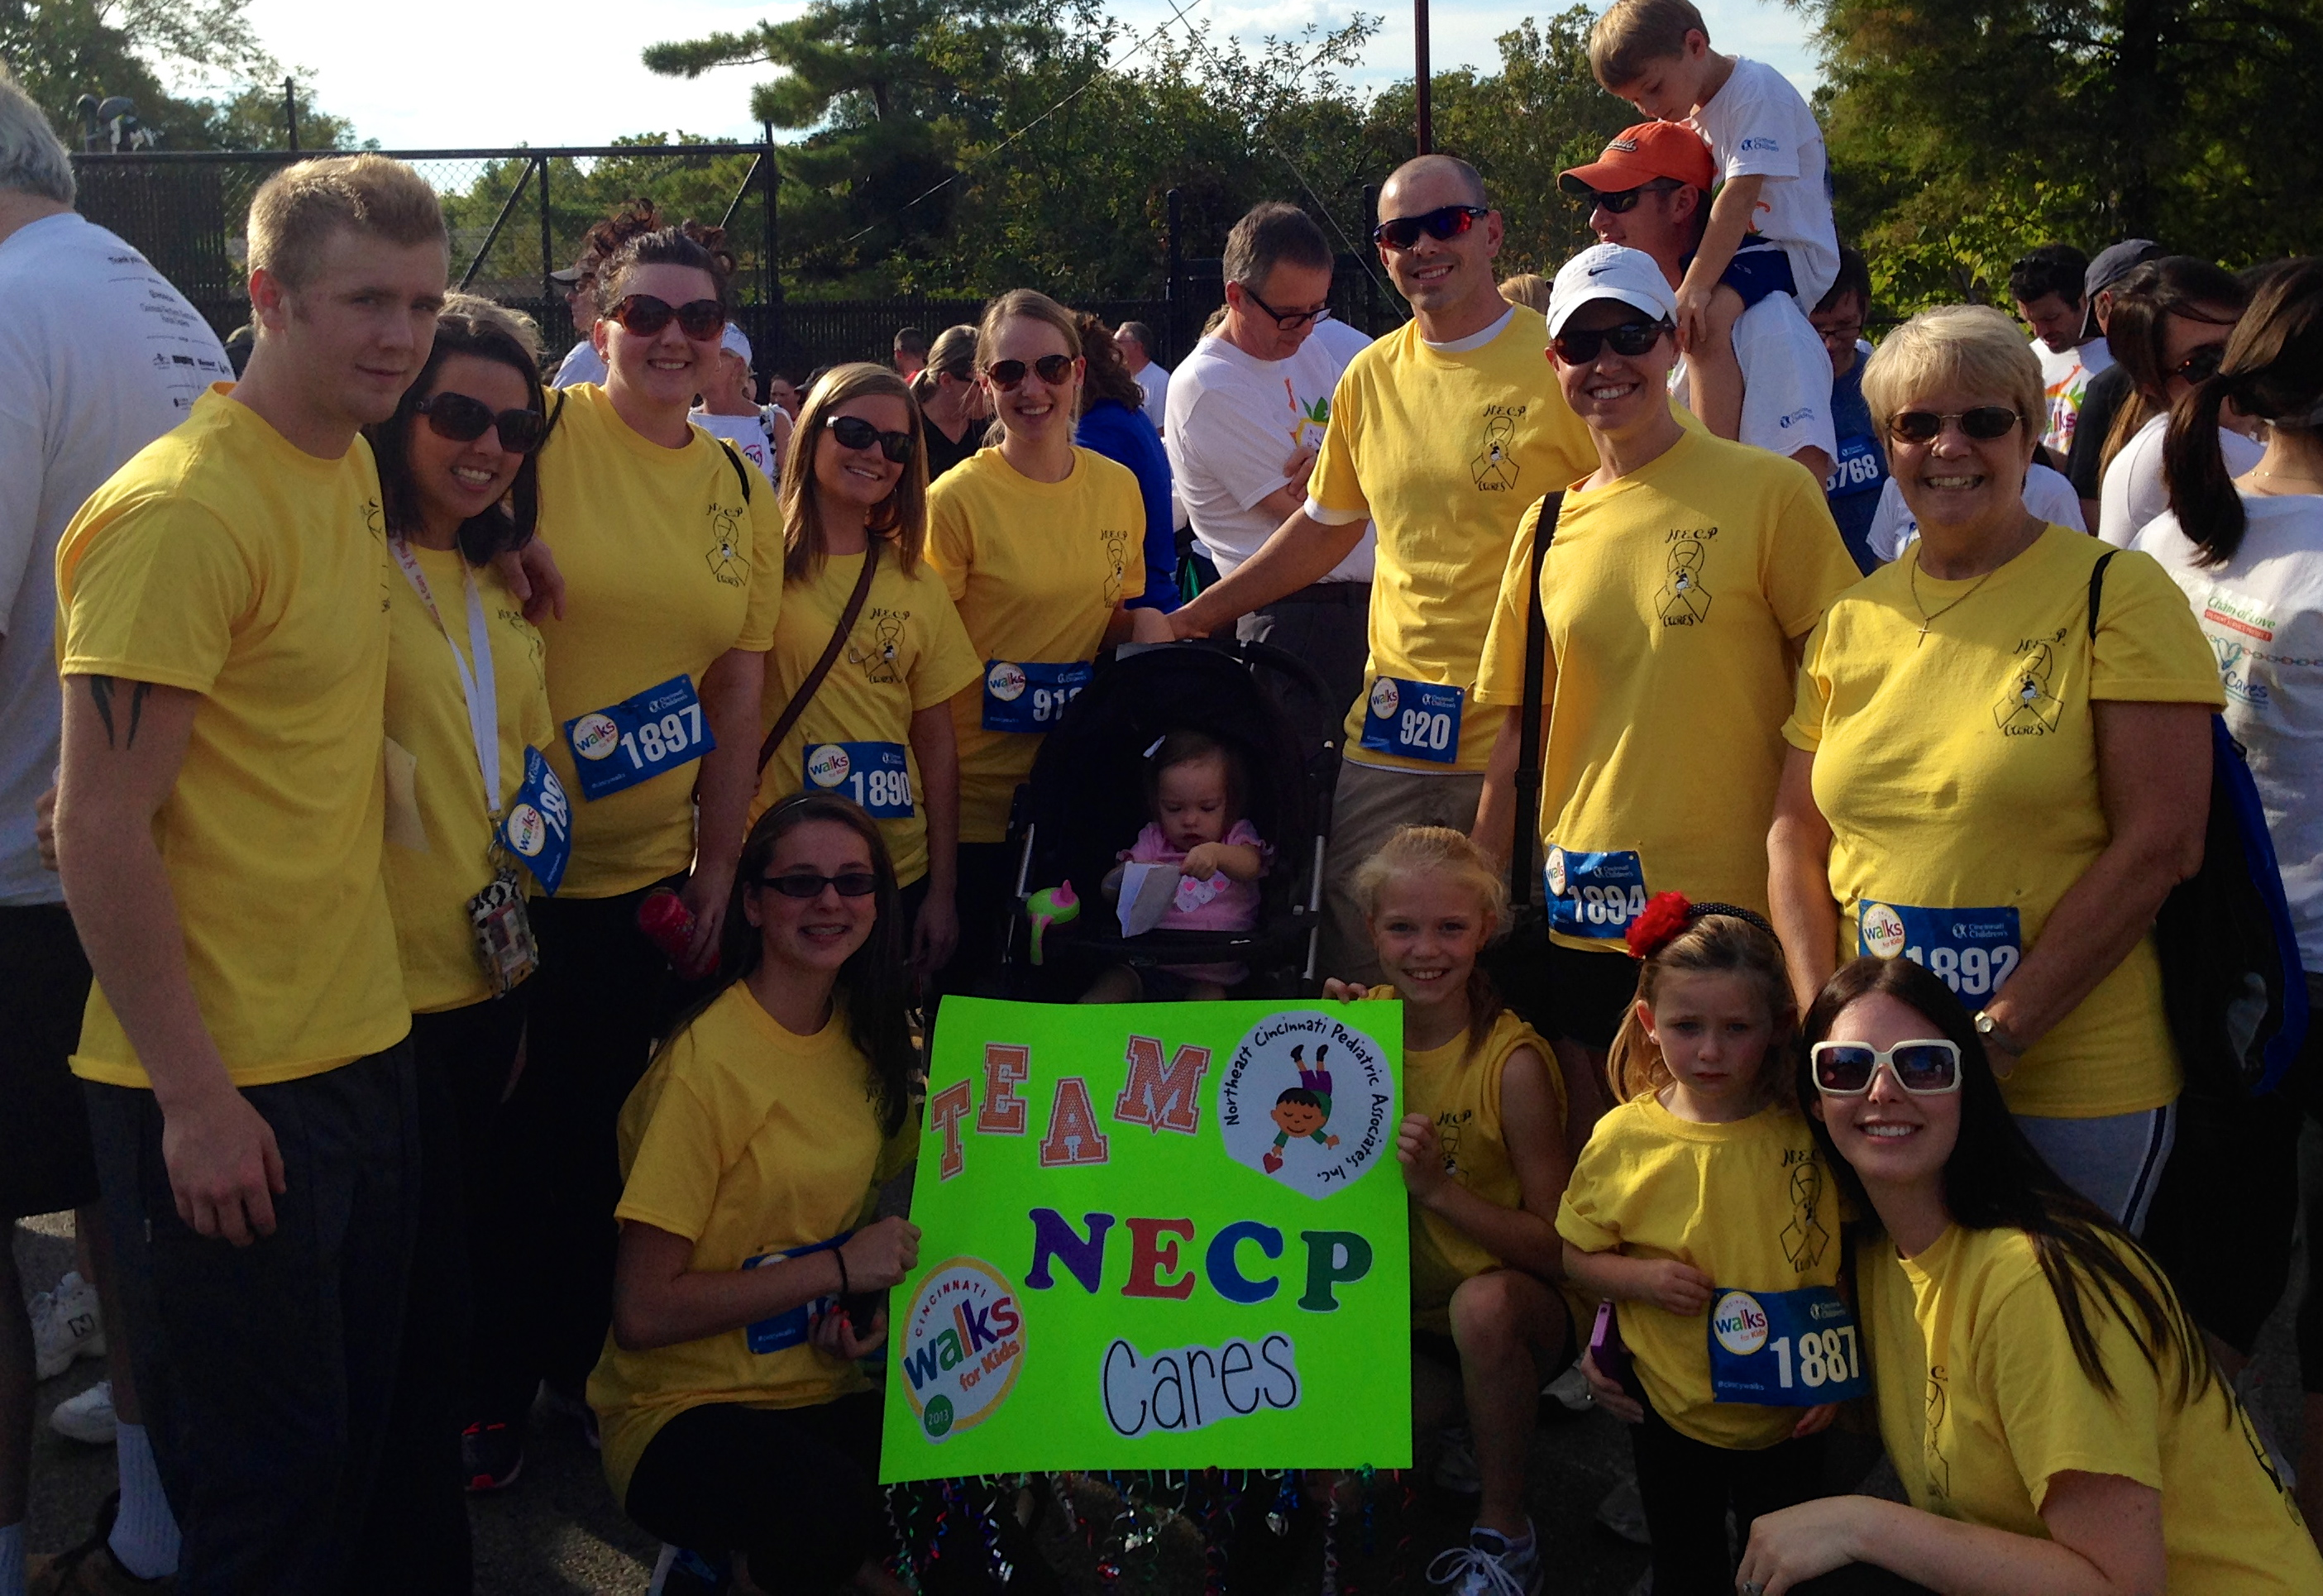 Team NECP CARES walks for kids